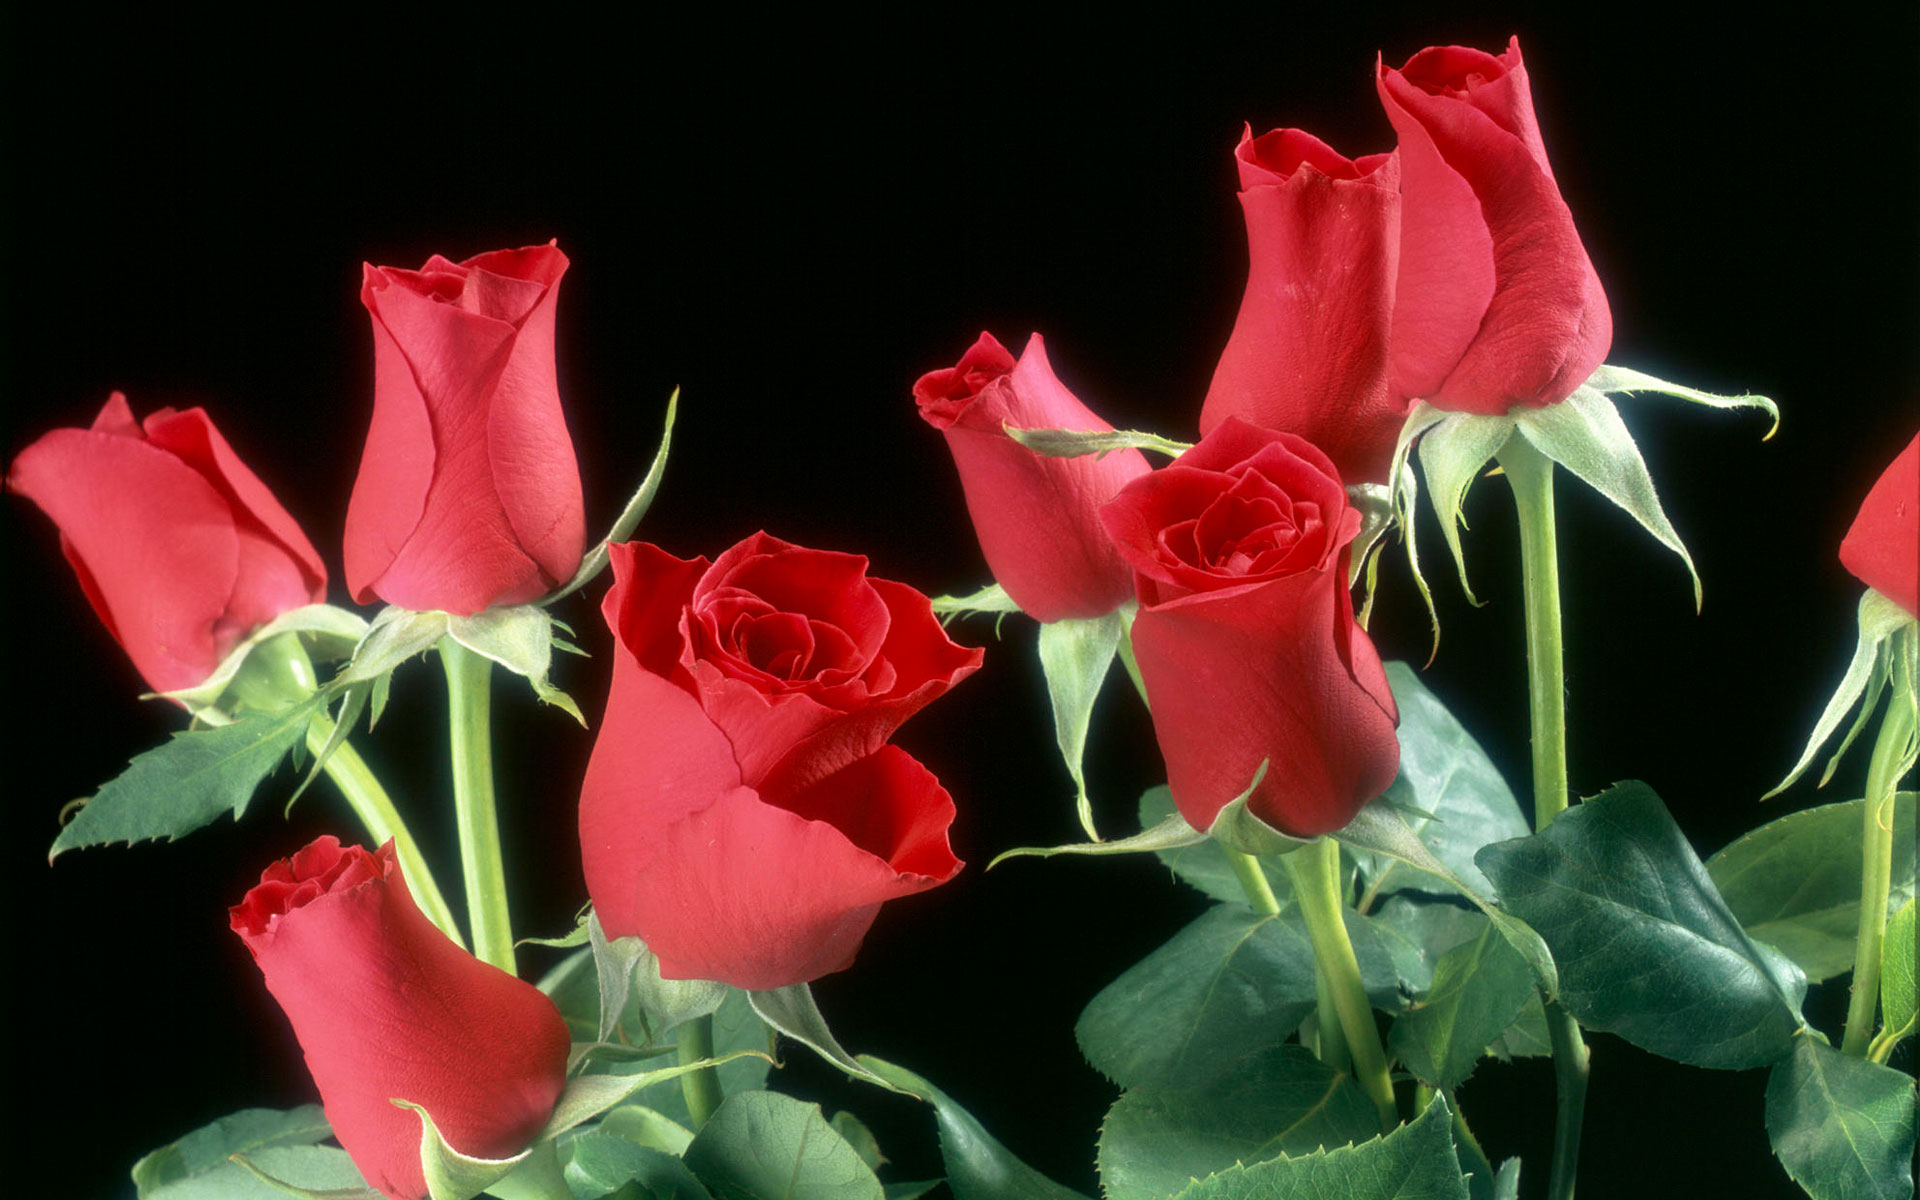 Red Roses Flowers 457.77 Kb